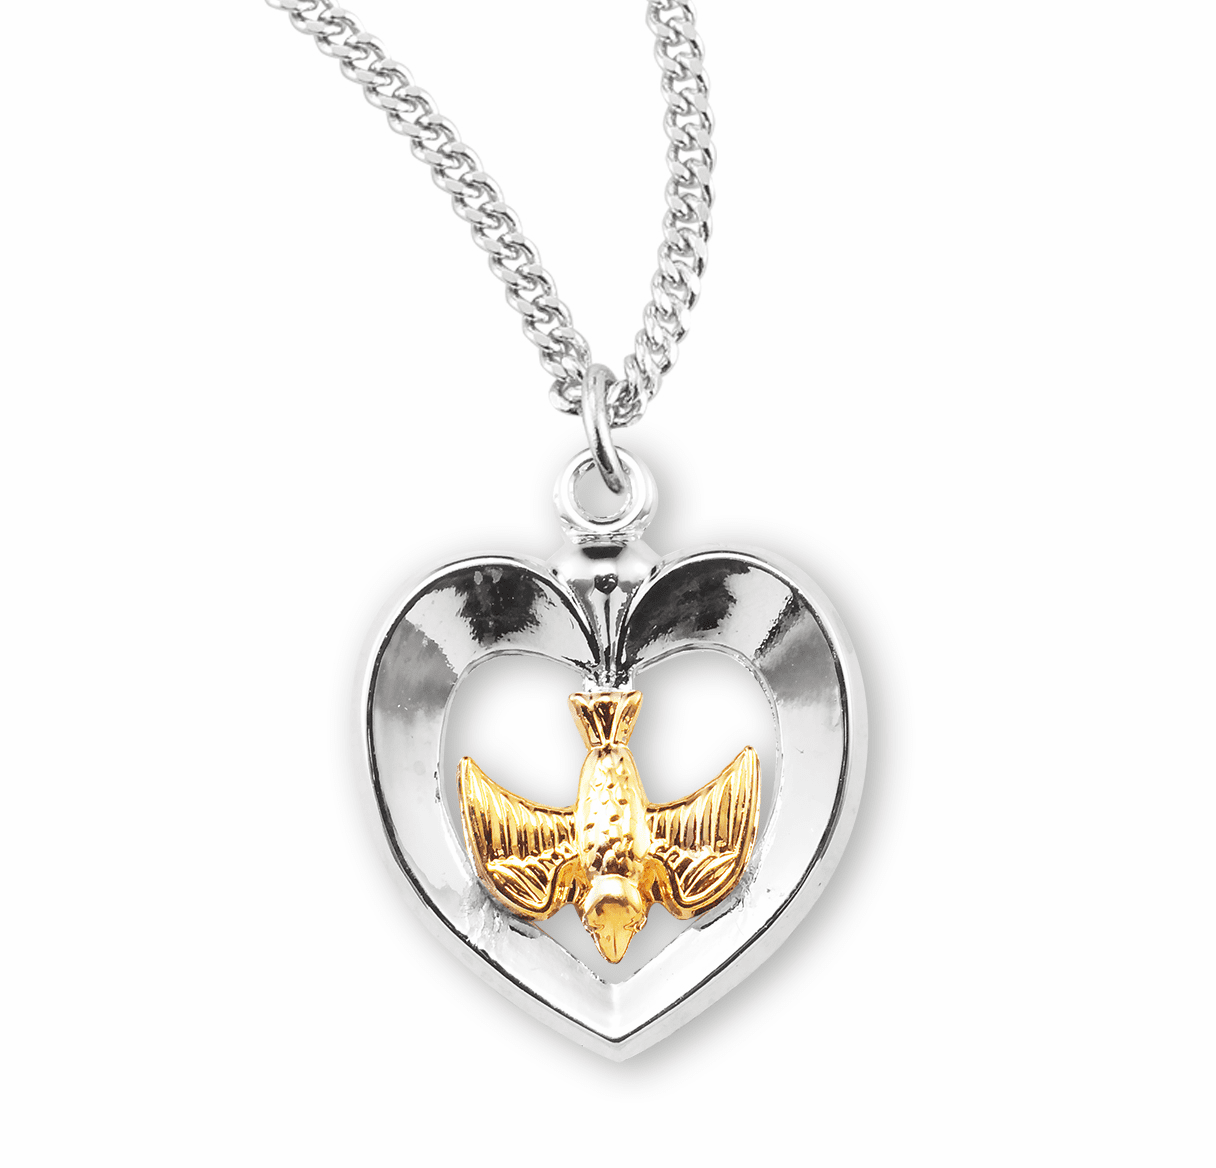 Two-Toned Holy Spirit Inlayed Heart Necklace by HMH Religious